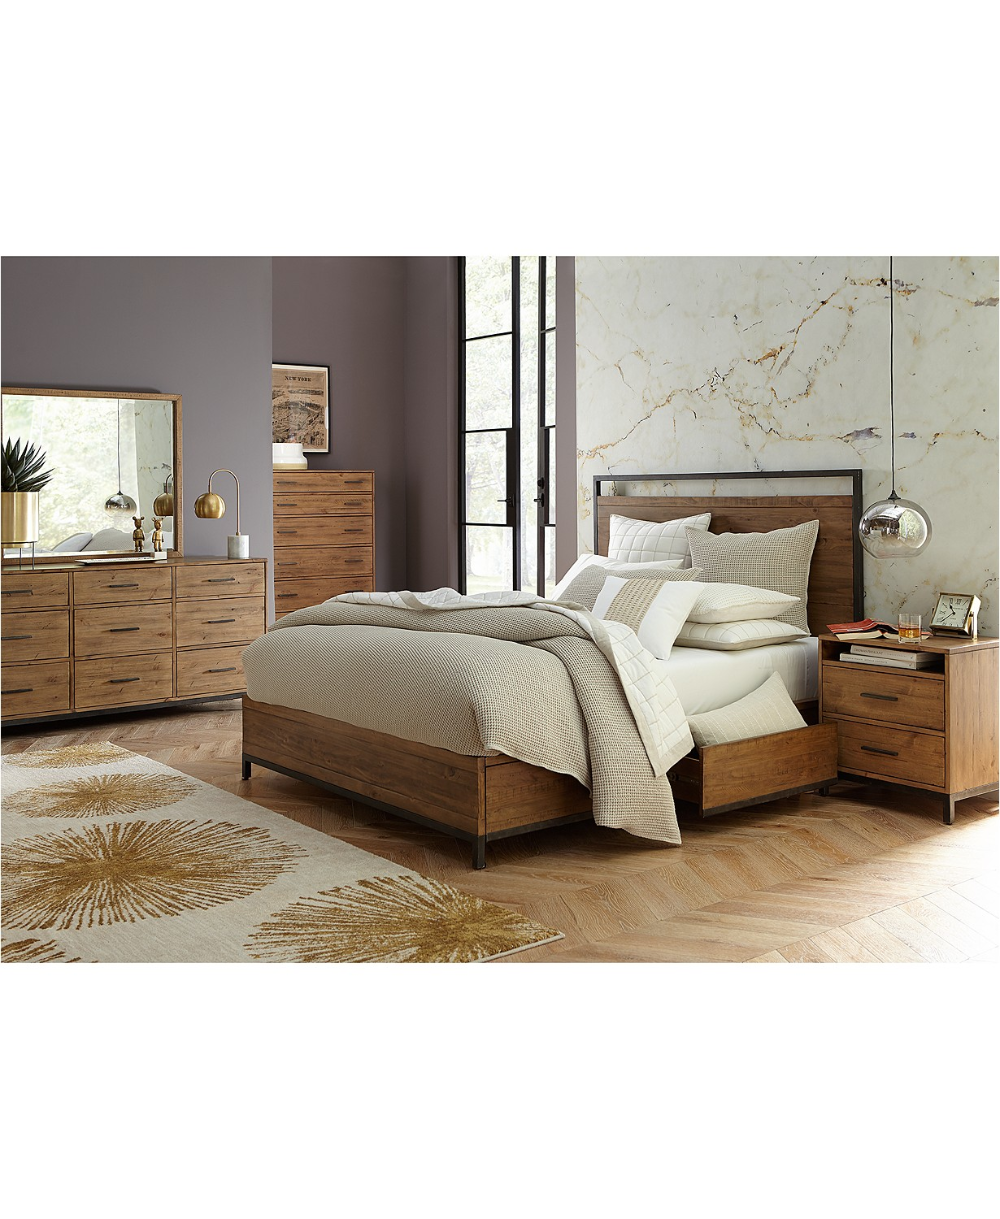 Furniture Gatlin Storage Queen Platform Bedroom Furniture 3 Pc Set Queen Bed Chest Nightstand Created For Macy S Reviews Furniture Macy S In 2020 Platform Bedroom Bedroom Furniture Bedroom Sets